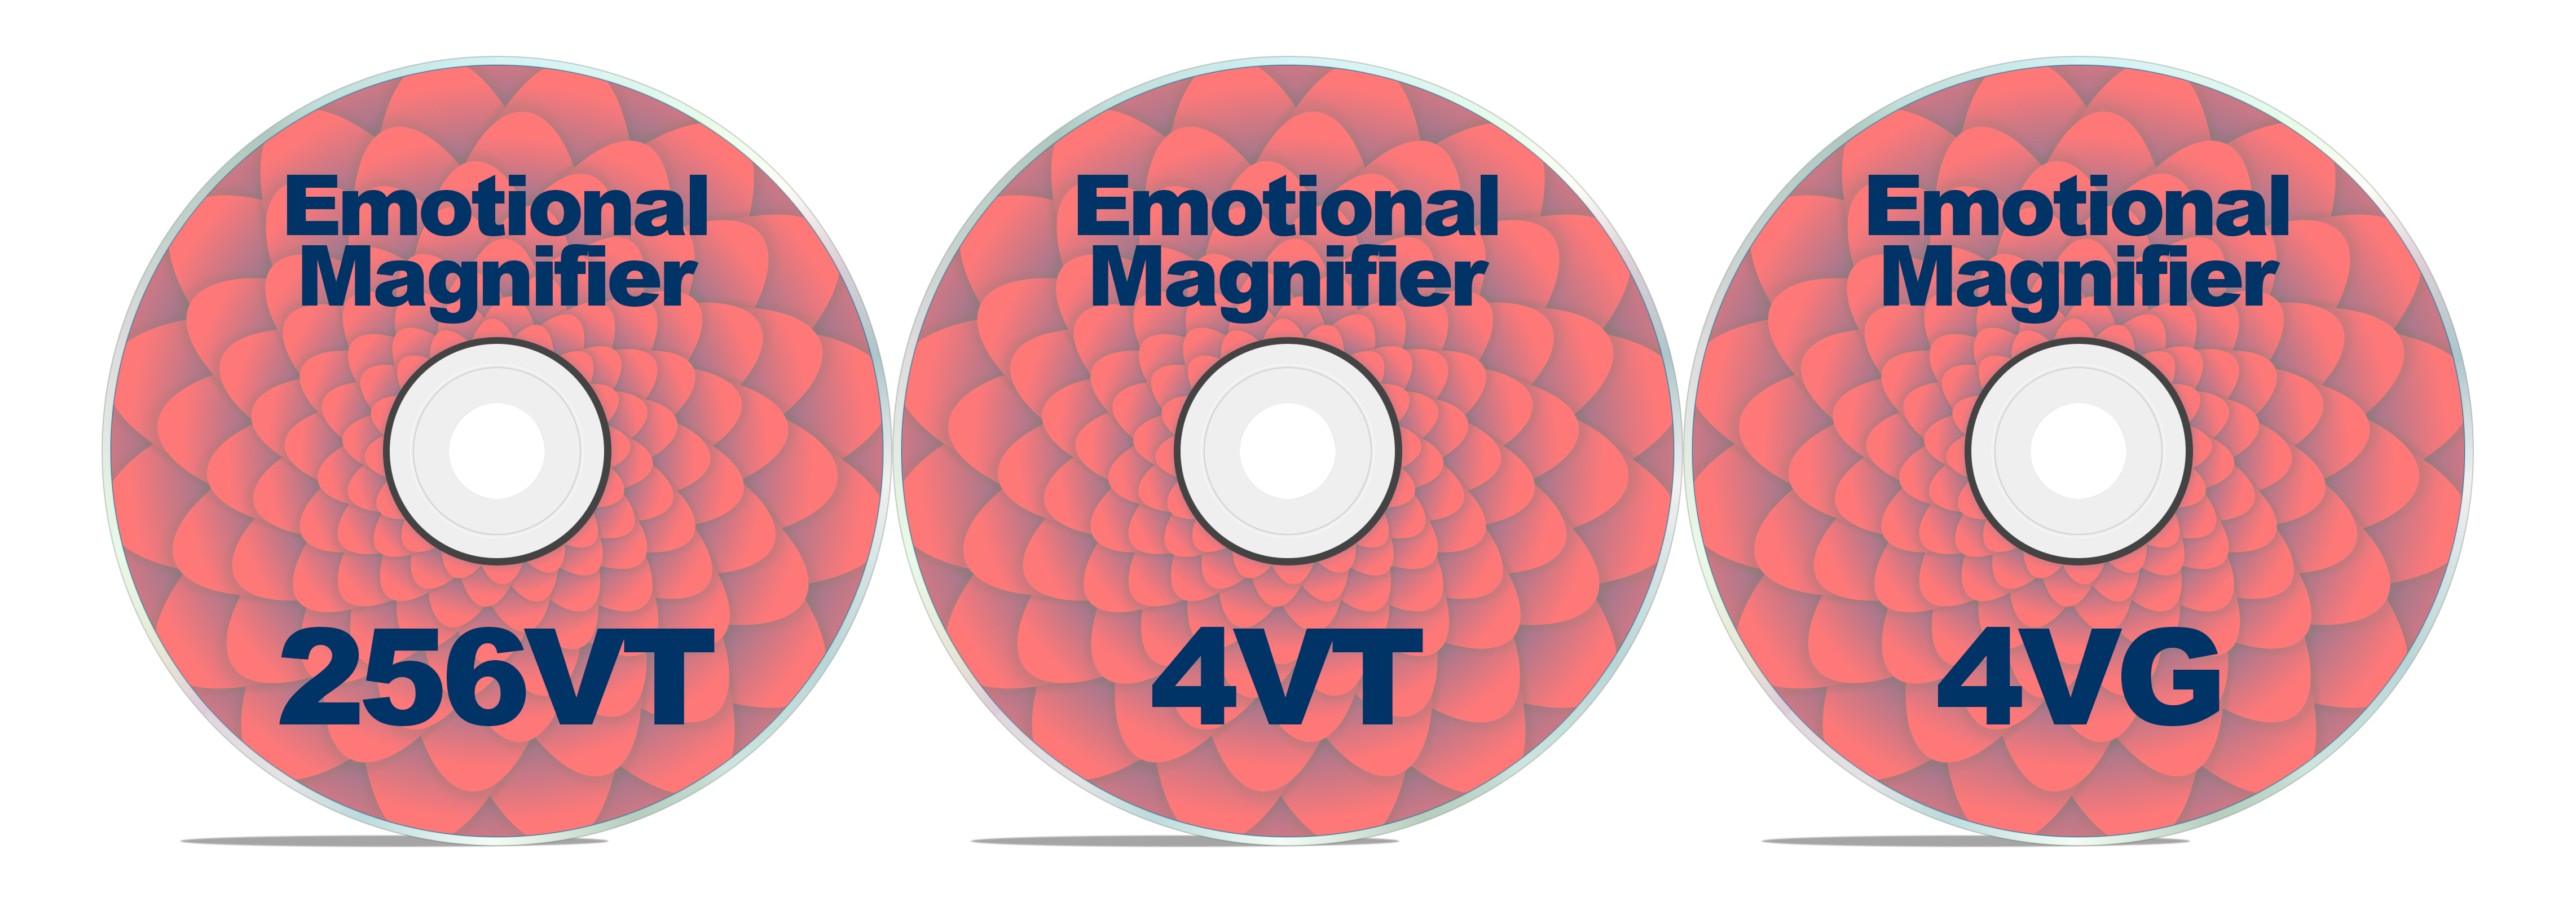 Emotional Magnifier